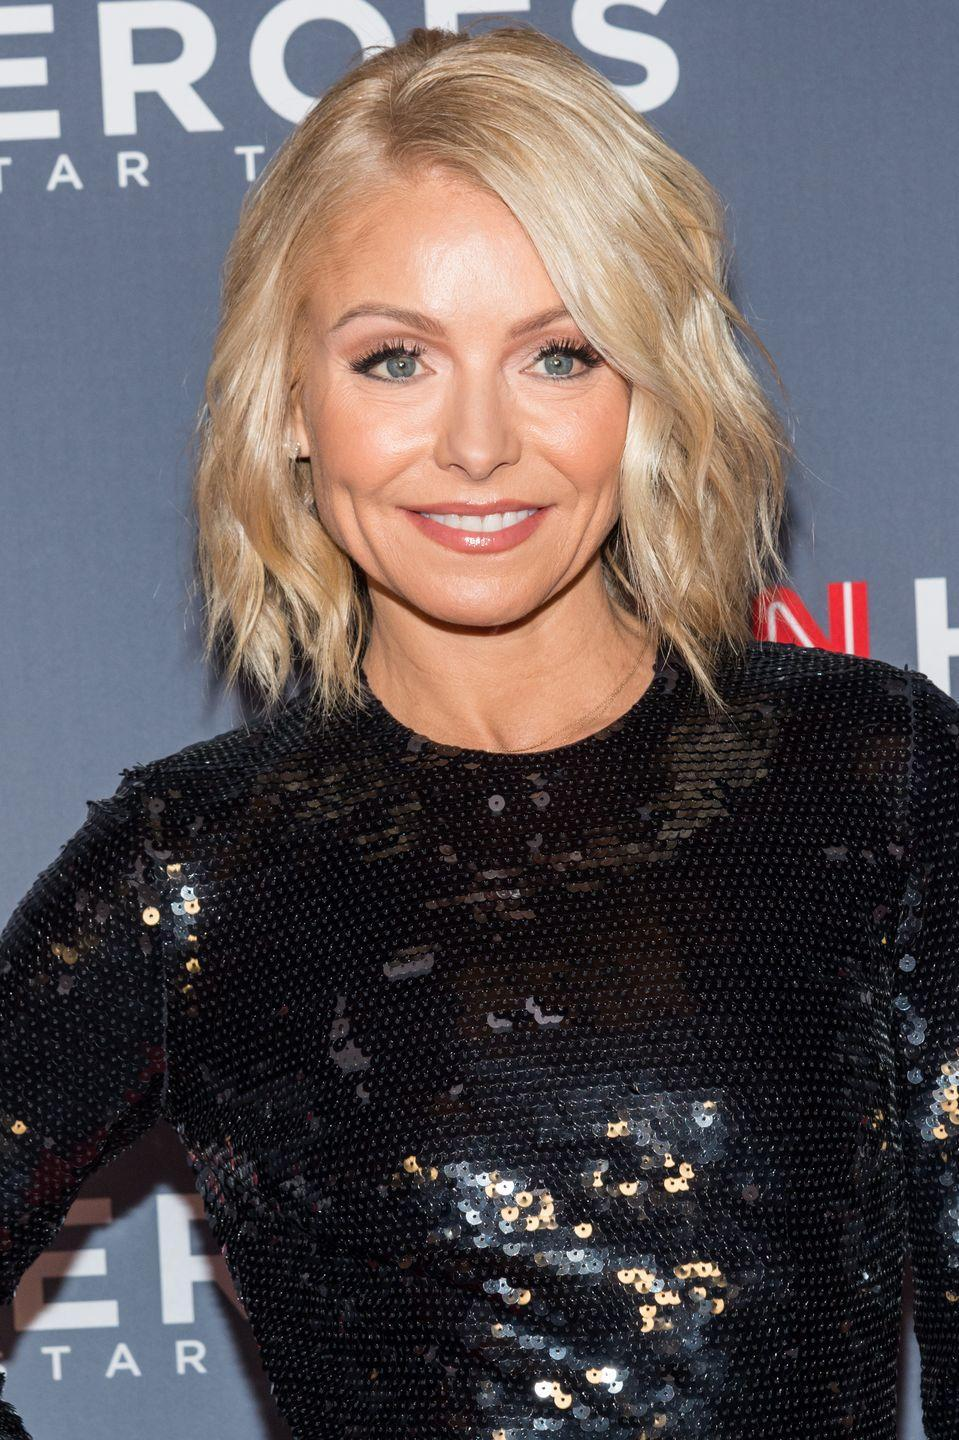 """<p>""""I got Botox because people kept saying 'Are you okay?' and I'm like, 'I'm fine, why?'"""" Ripa <a href=""""https://www.usmagazine.com/stylish/news/kelly-ripas-bad-botox-left-her-unable-to-smile-w449577/"""" rel=""""nofollow noopener"""" target=""""_blank"""" data-ylk=""""slk:told"""" class=""""link rapid-noclick-resp"""">told</a> Michael Strahan, her <em>Live</em> co-host in 2015. 'You look like you're angry.' I was like, 'Then it's time to get Botox.'""""</p>"""